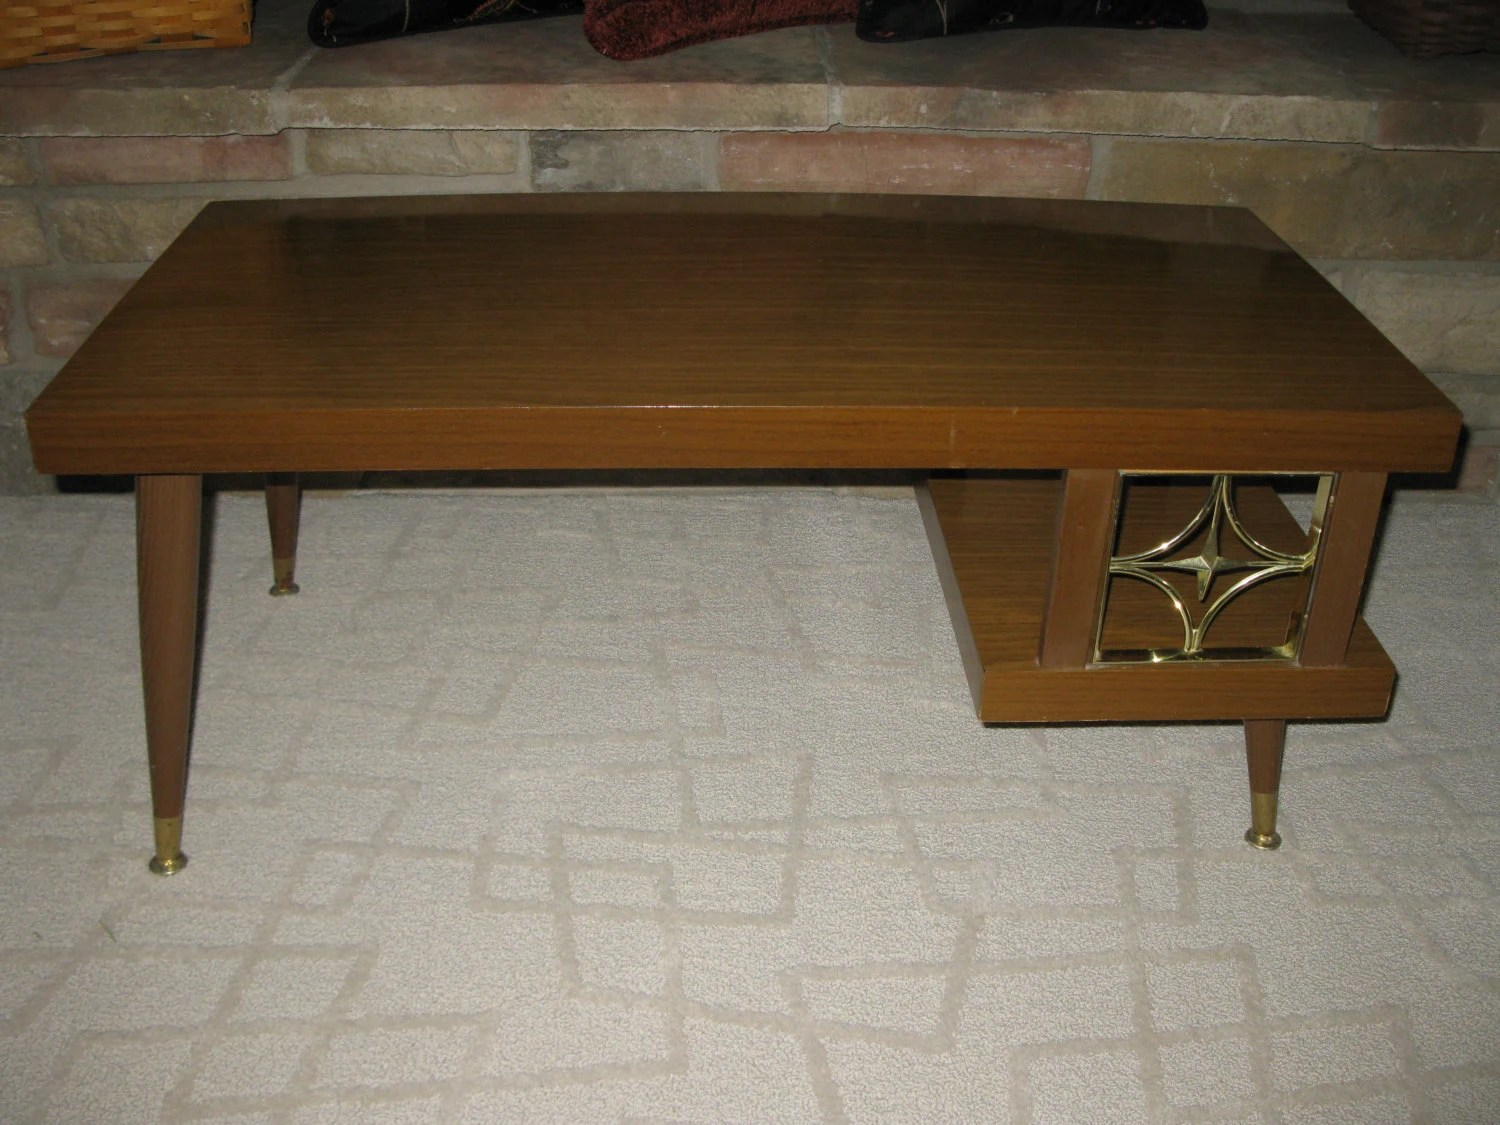 AWESOME 2 Tier Mid Century Formica Coffee Table End